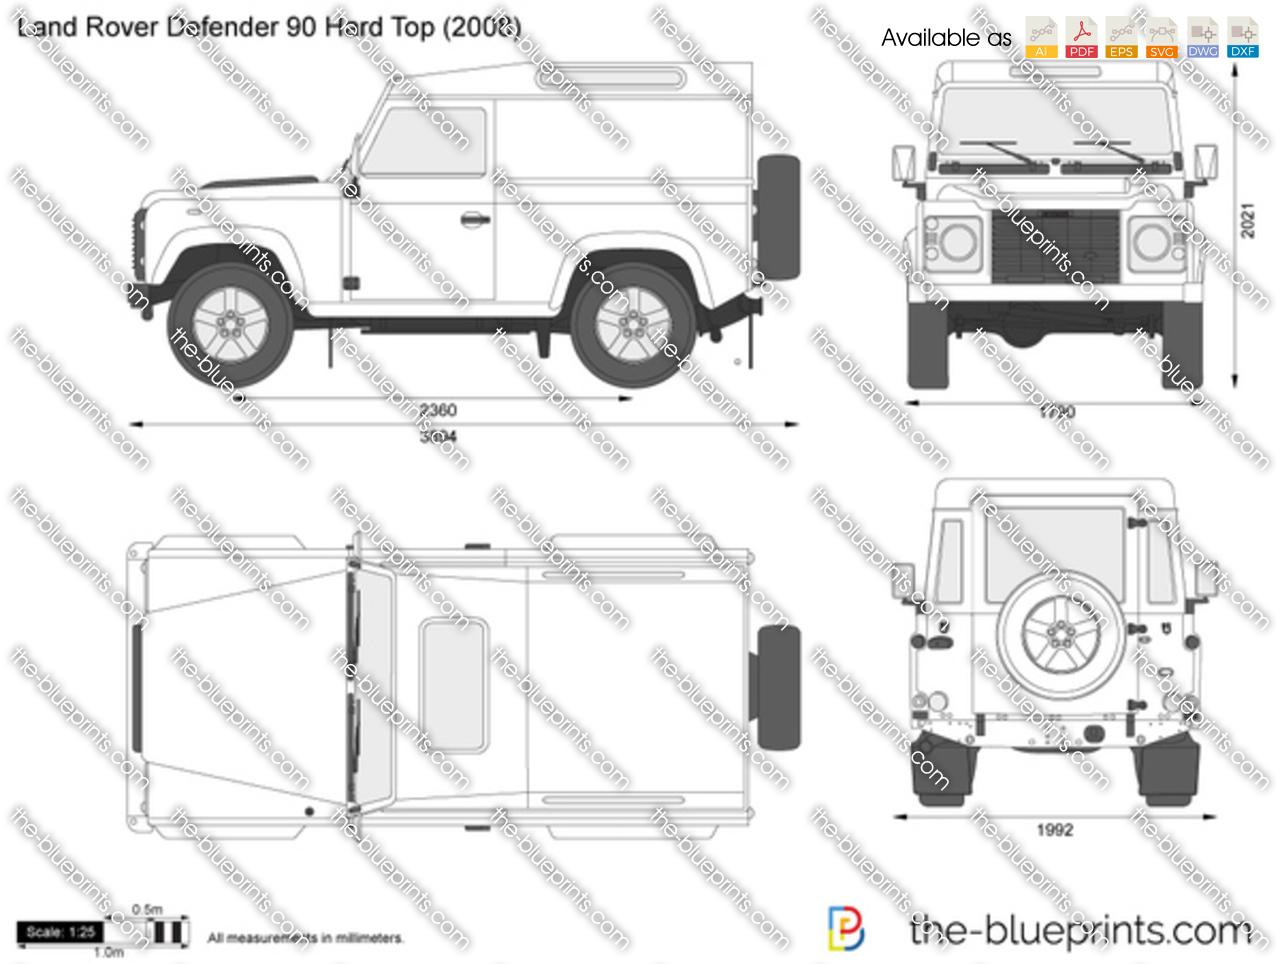 Land Rover Defender 90 Hard Top 2010